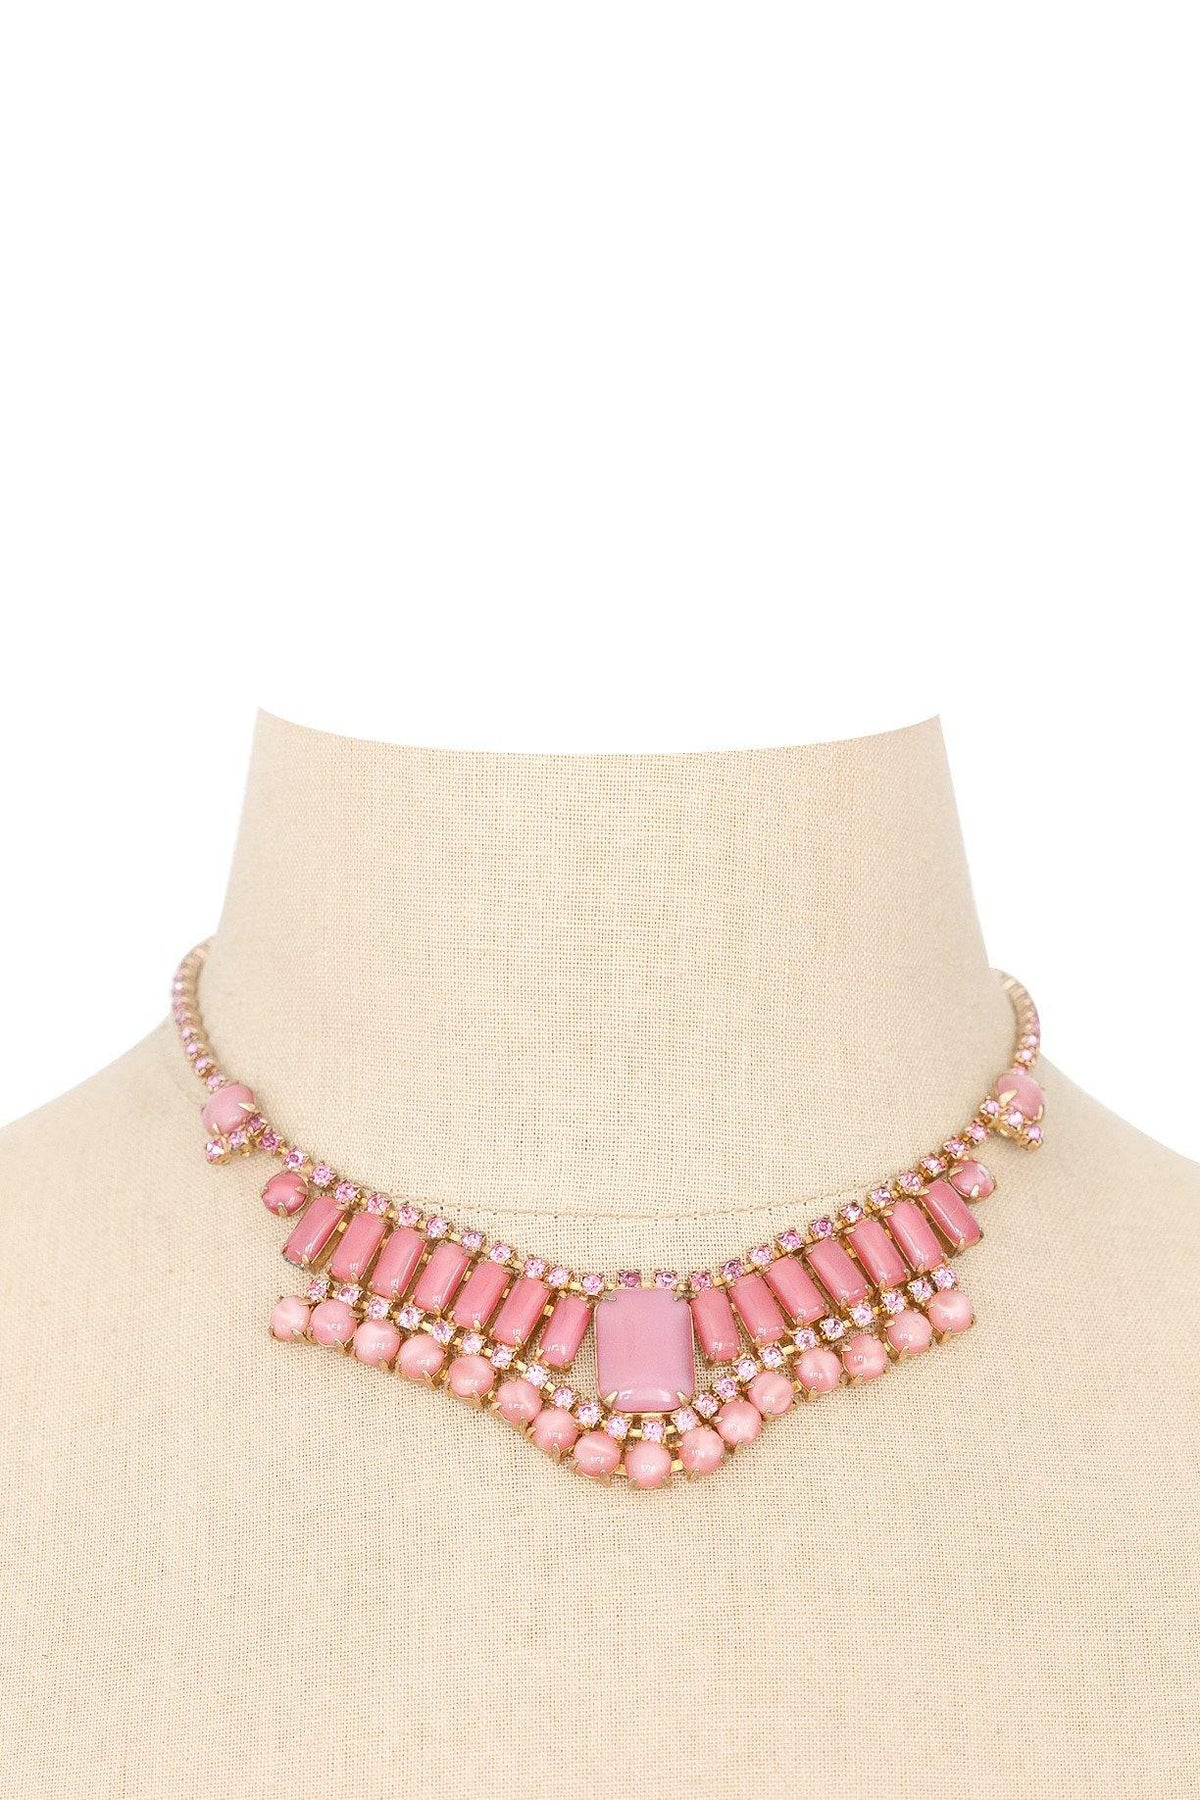 50's Vintage Rhinestone Statement Necklace